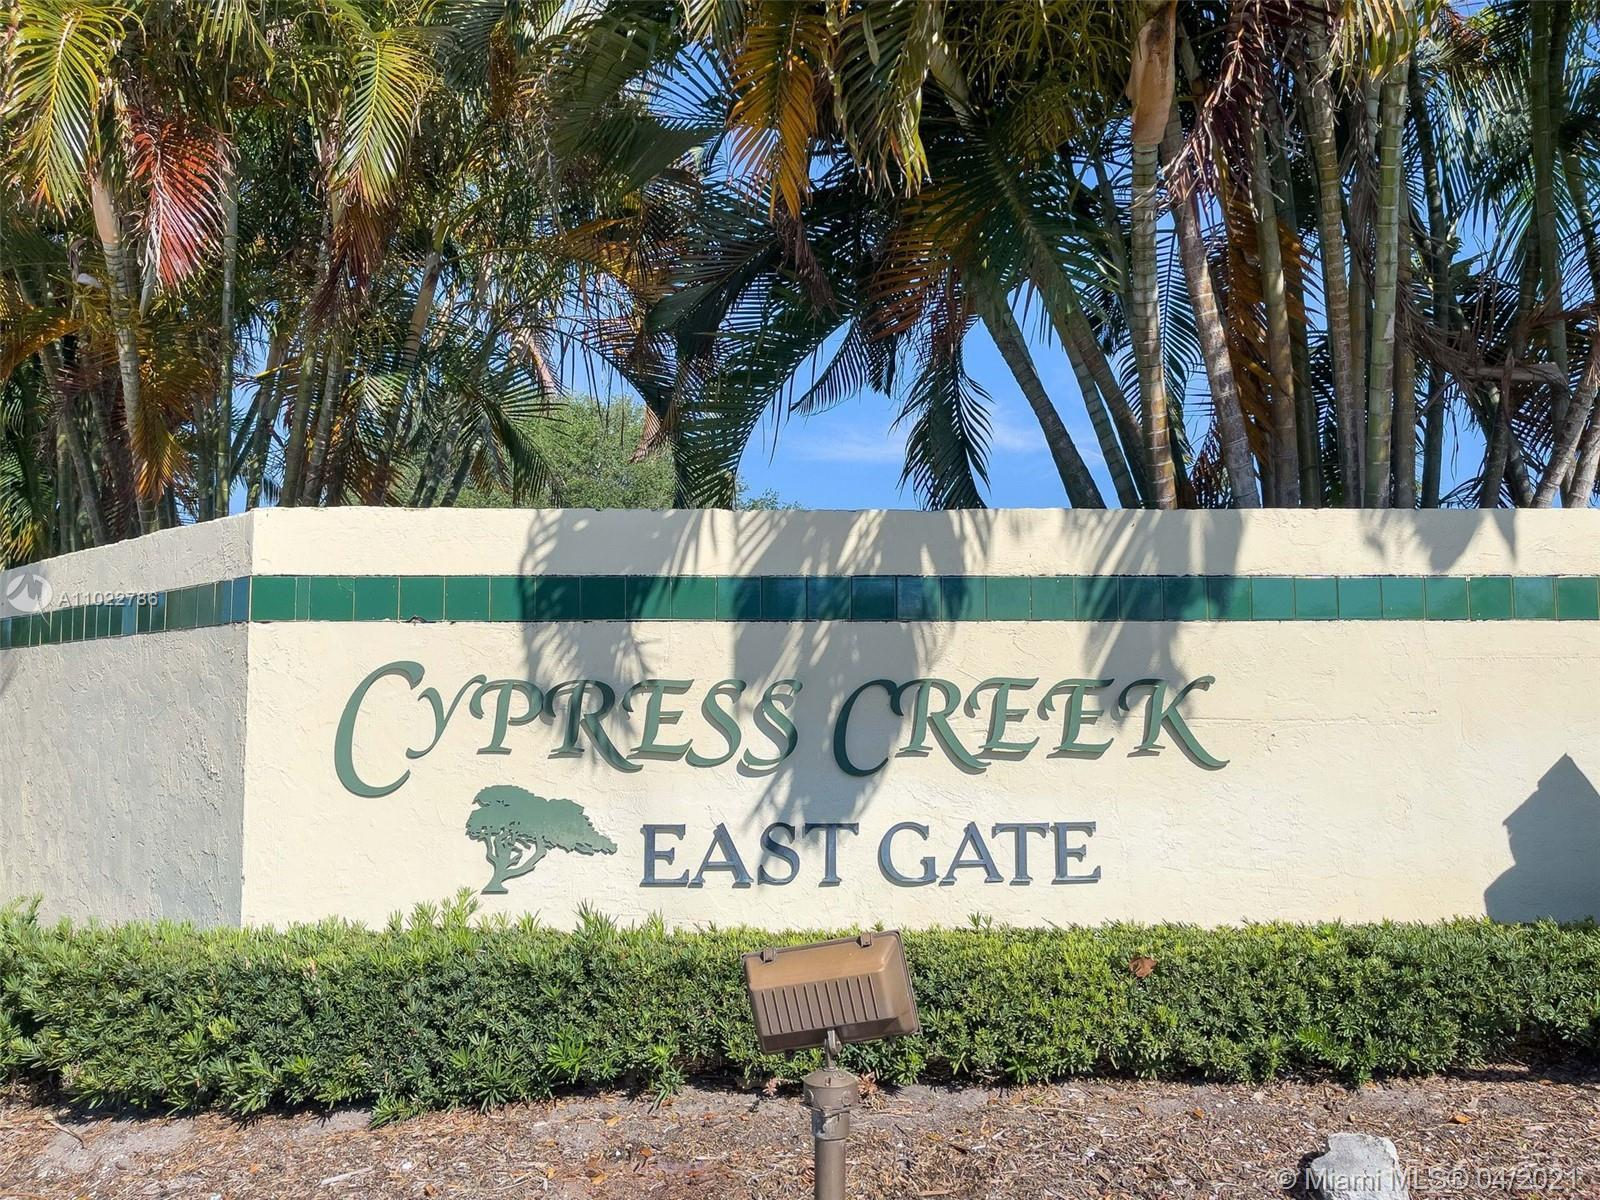 LOVELY ONE STORY POOL HOME AT CYPRESS CREEK, 4 BEDROOMS, 3 FULL BATHROOMS, TWO CAR GARAGES & CIRCULA